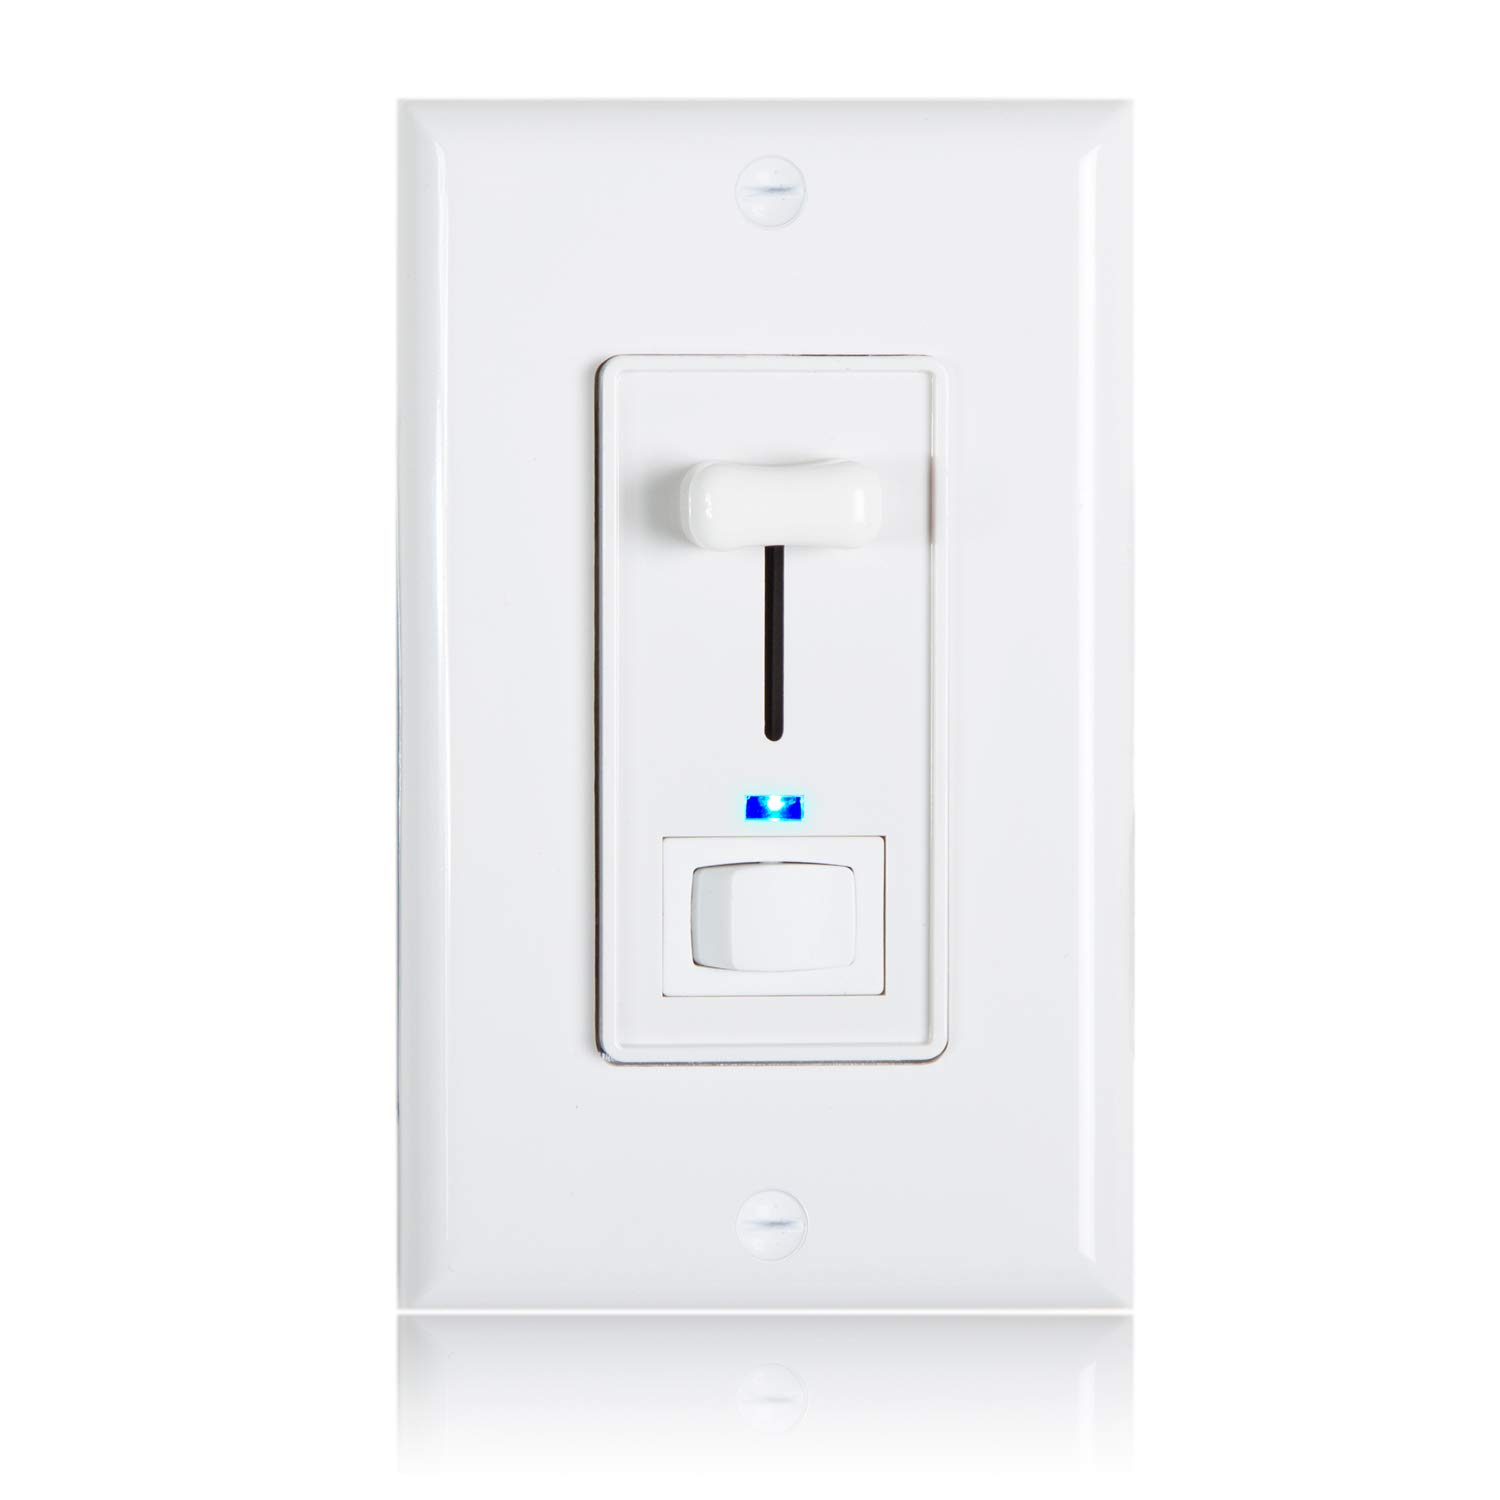 MEW-DM620-02 LED Compatible 2 Pack Maxxima 3-Way//Single Pole Dimmer Electrical Light Switch With Blue Indicator Light 600 Watt max Wall Plate Included